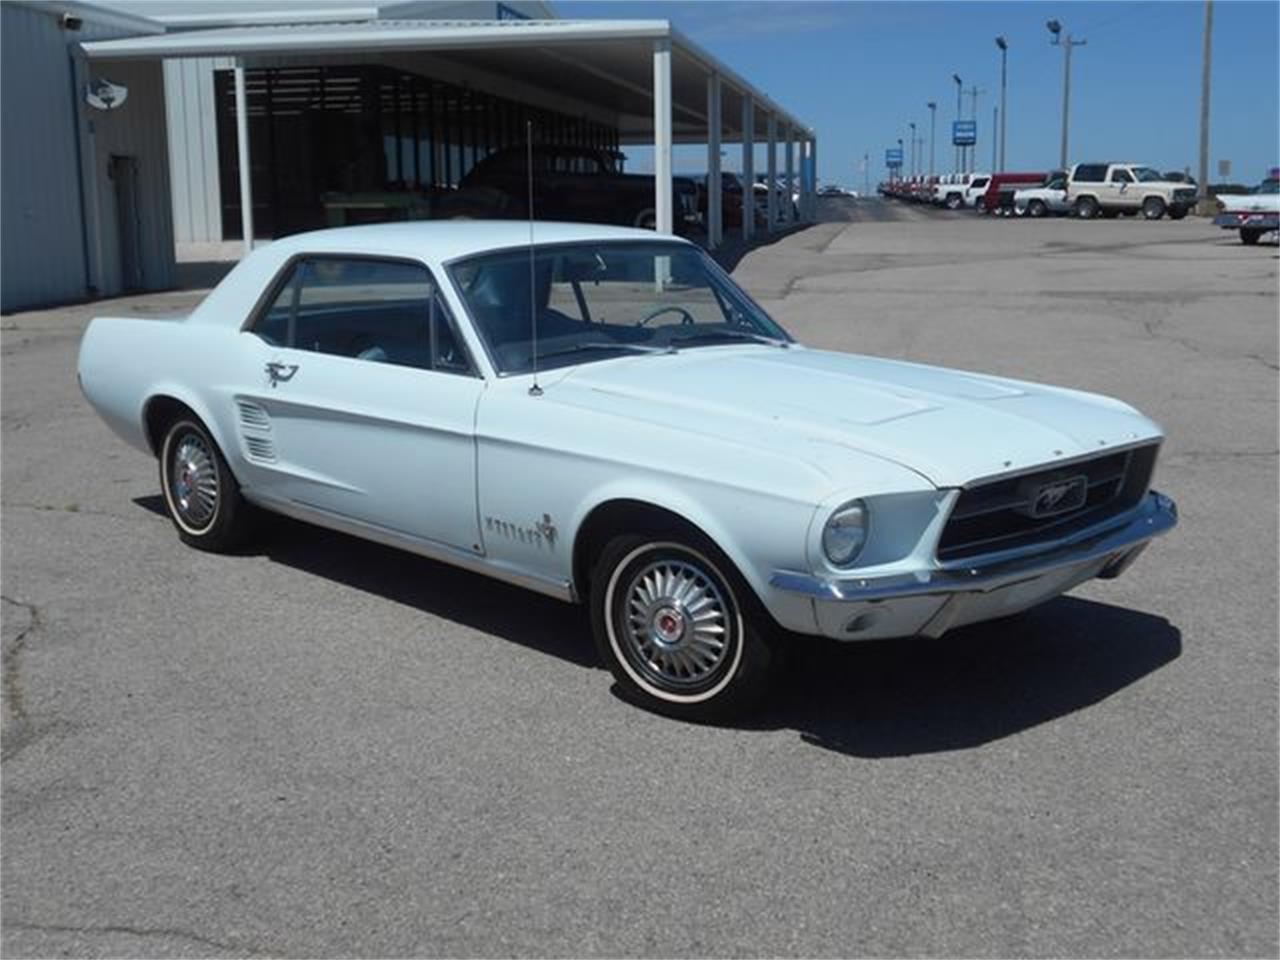 Large picture of 1967 mustang 8500 00 lgtm